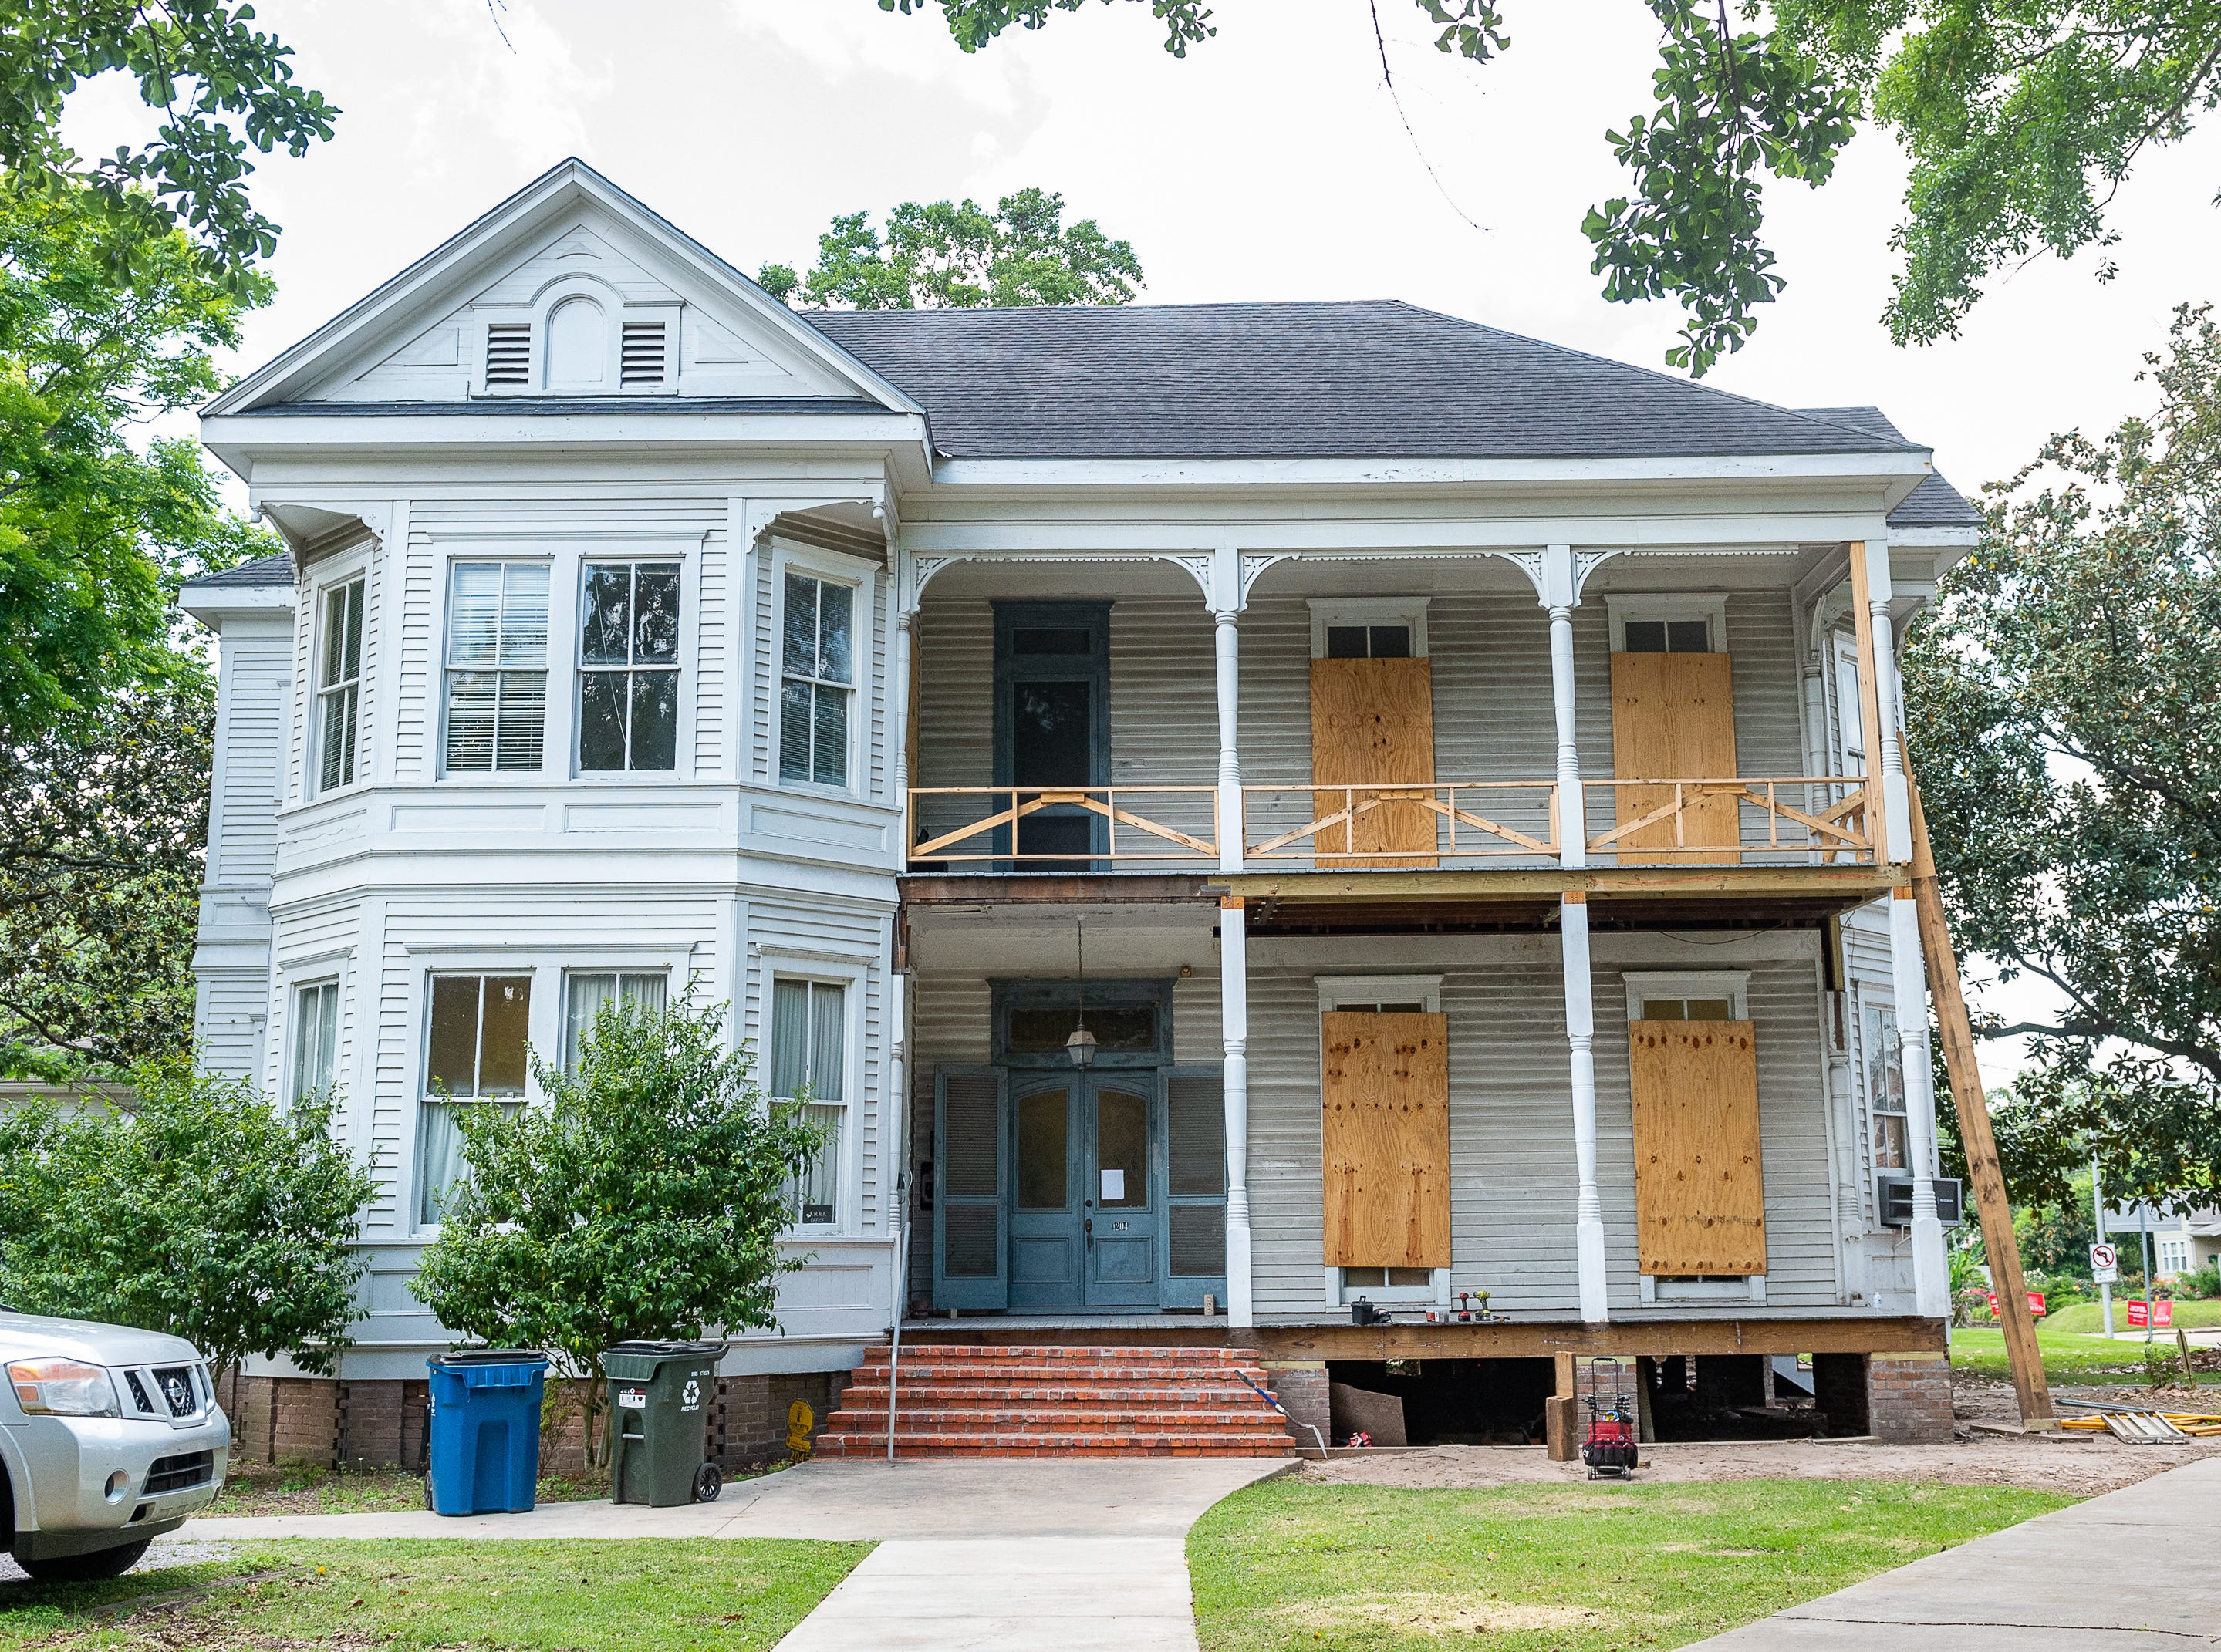 Restoration efforts underway at The Roy House, One of the oldest buildings on UL's campus. Wednesday, May 1, 2019.